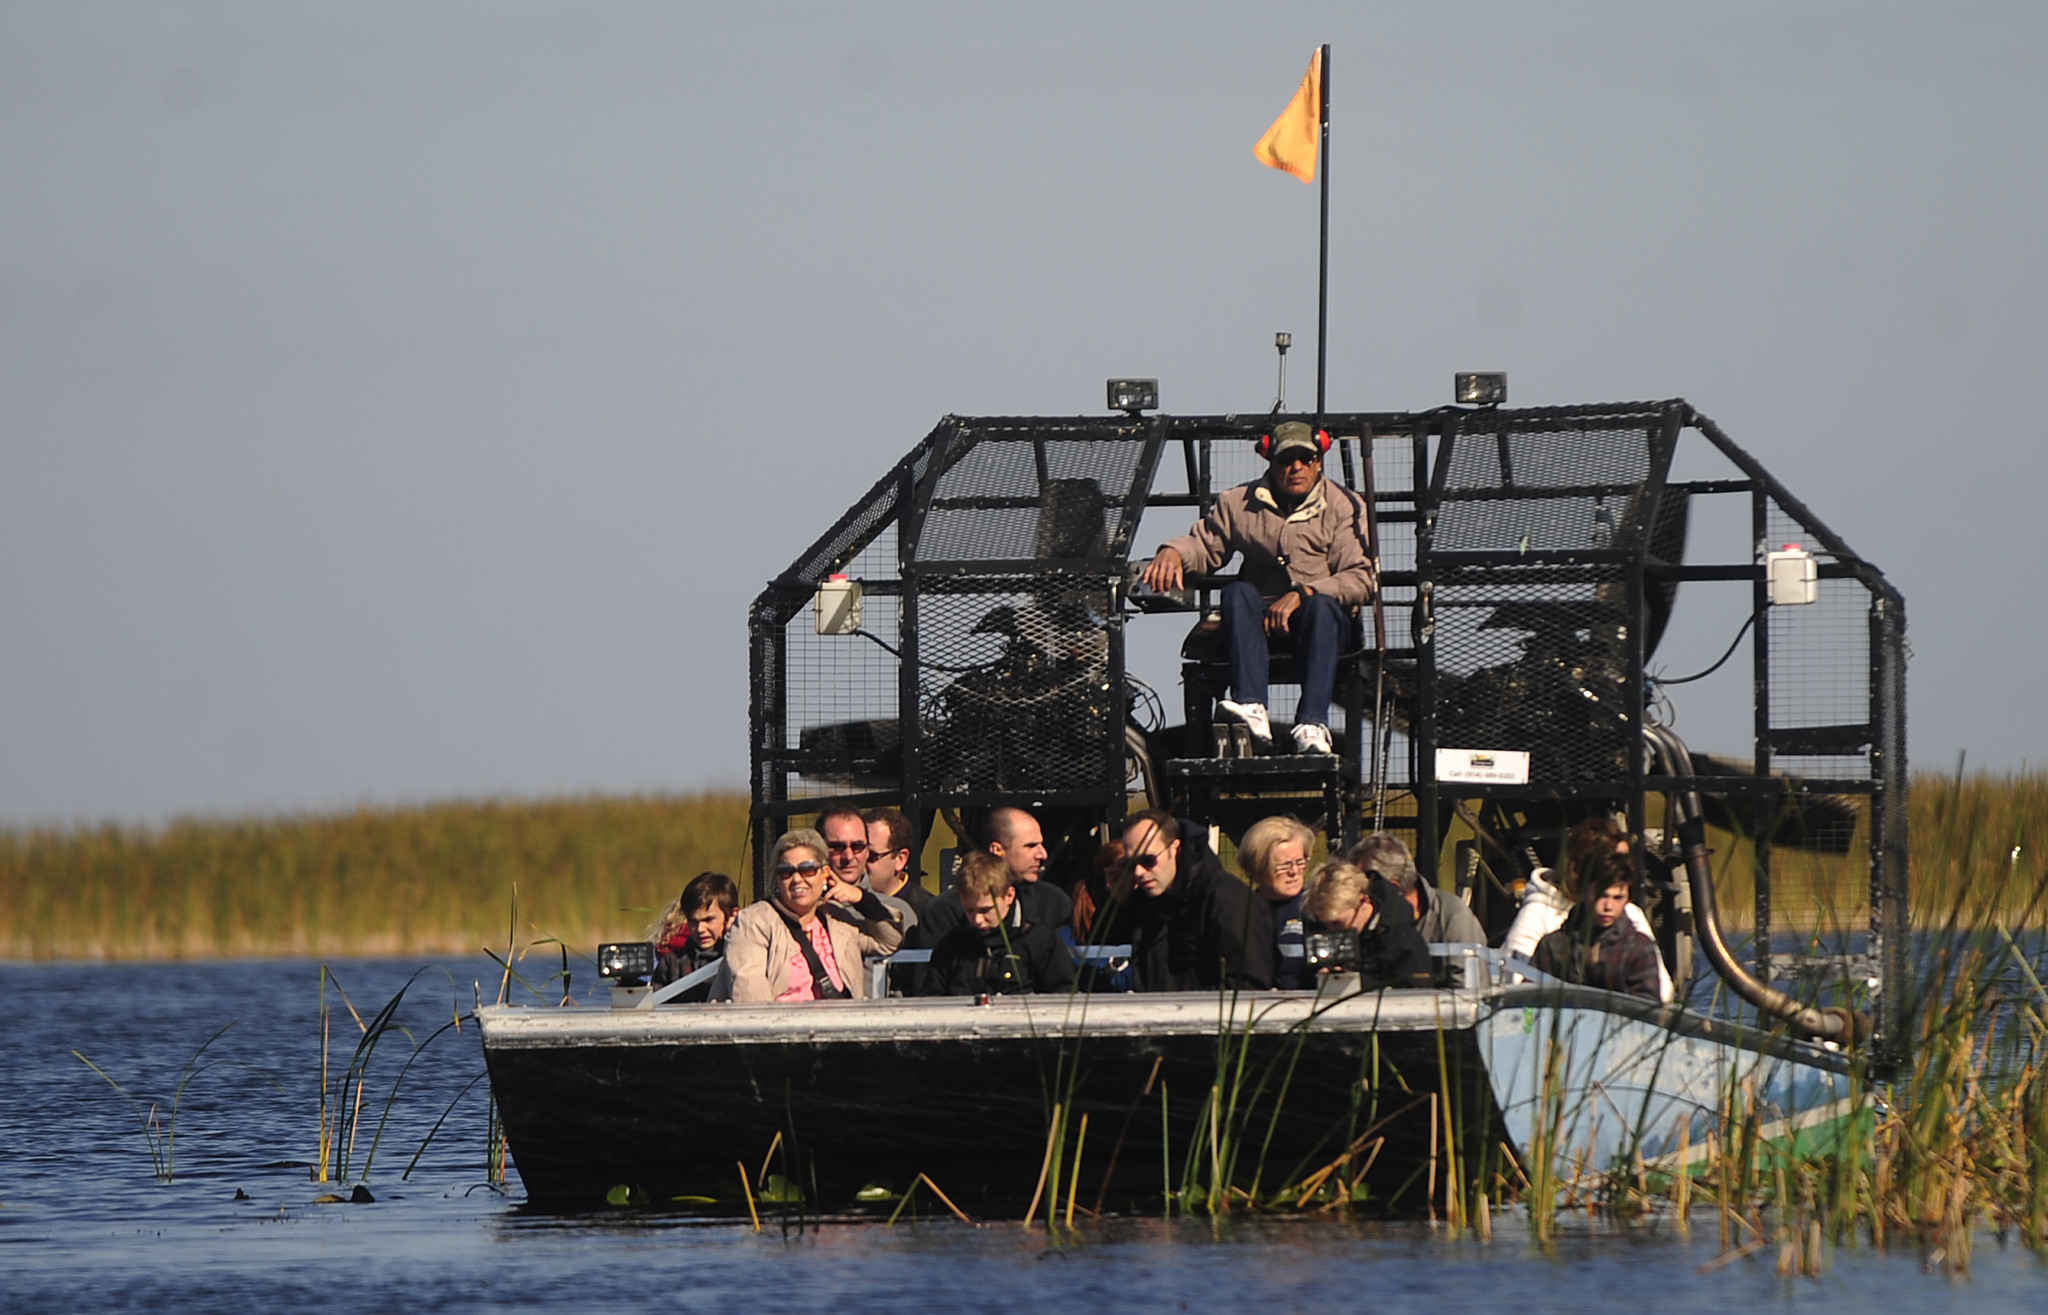 Things every South Floridian should do once - Go for an airboat ride